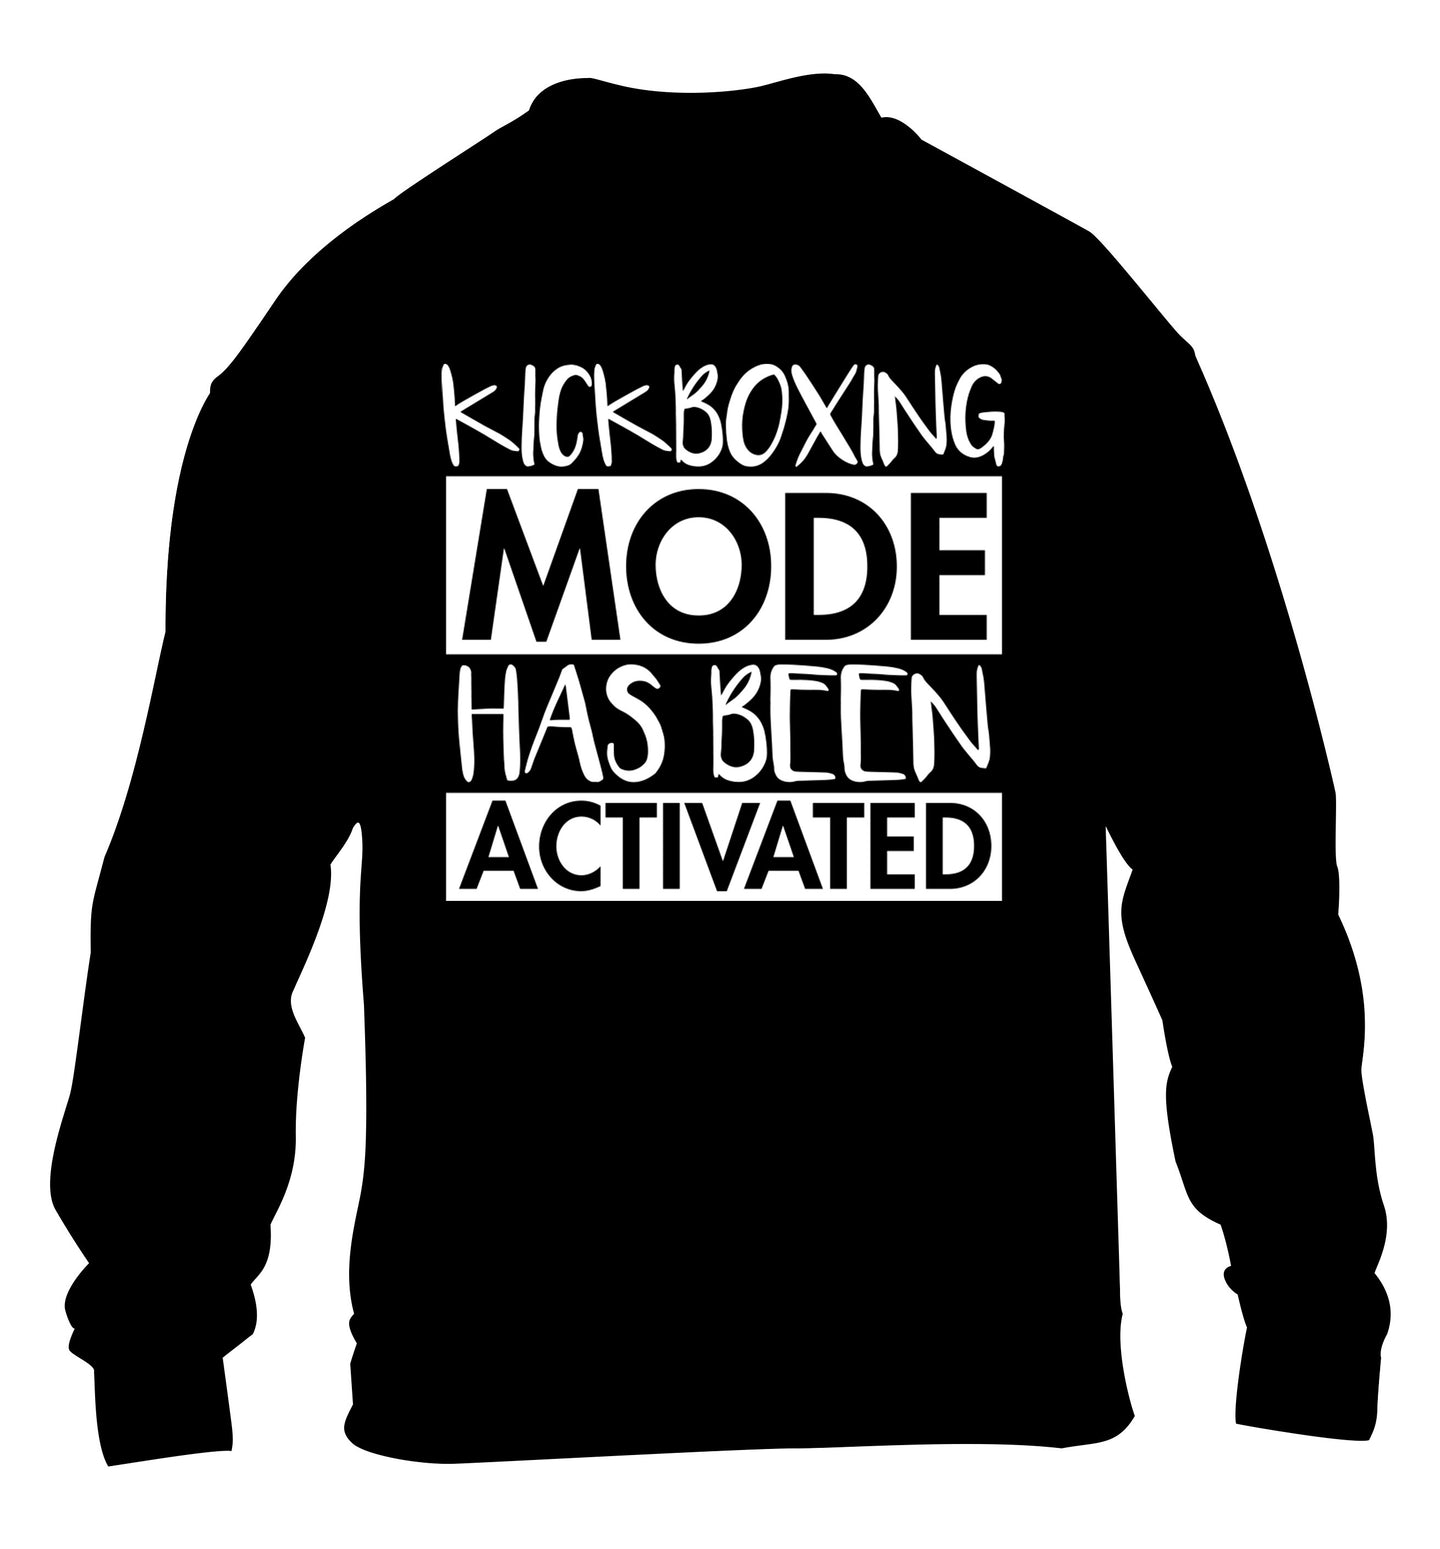 Kickboxing mode activated children's black sweater 12-14 Years